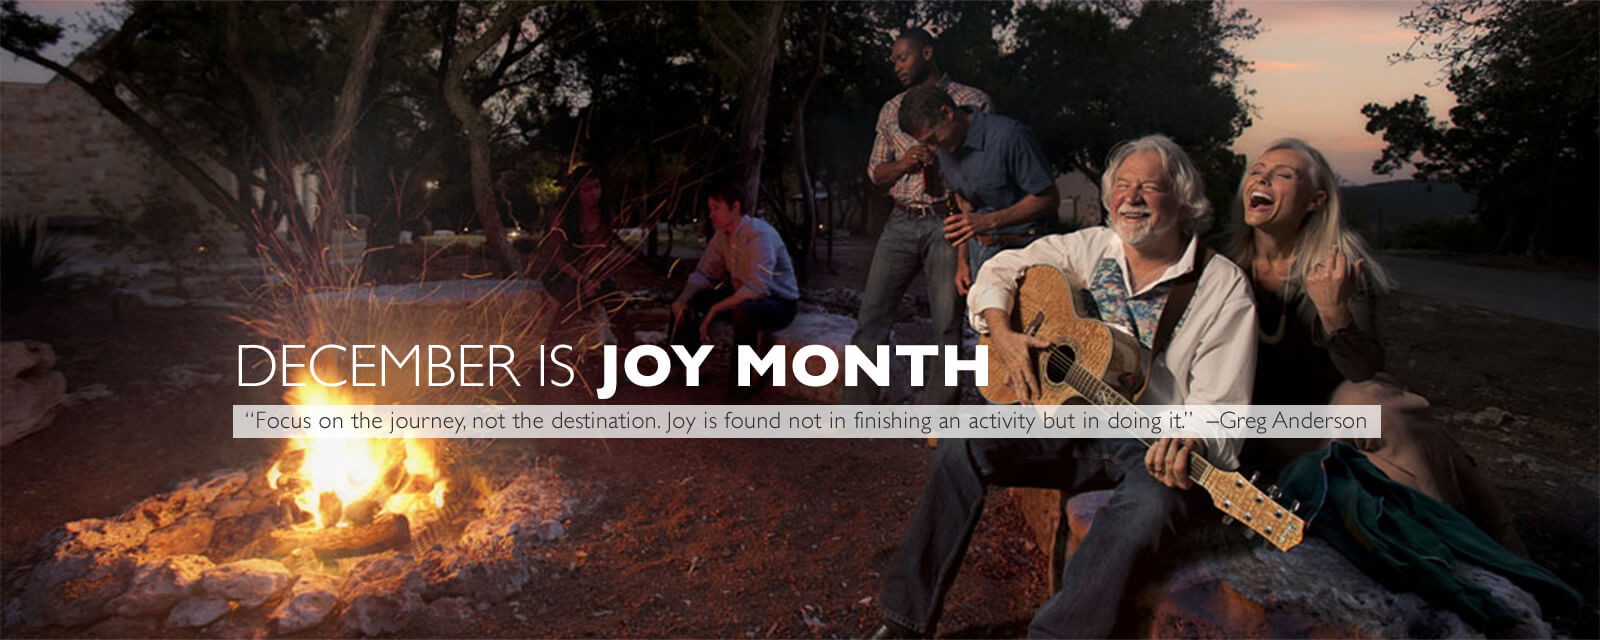 December is joy month at Travaasa